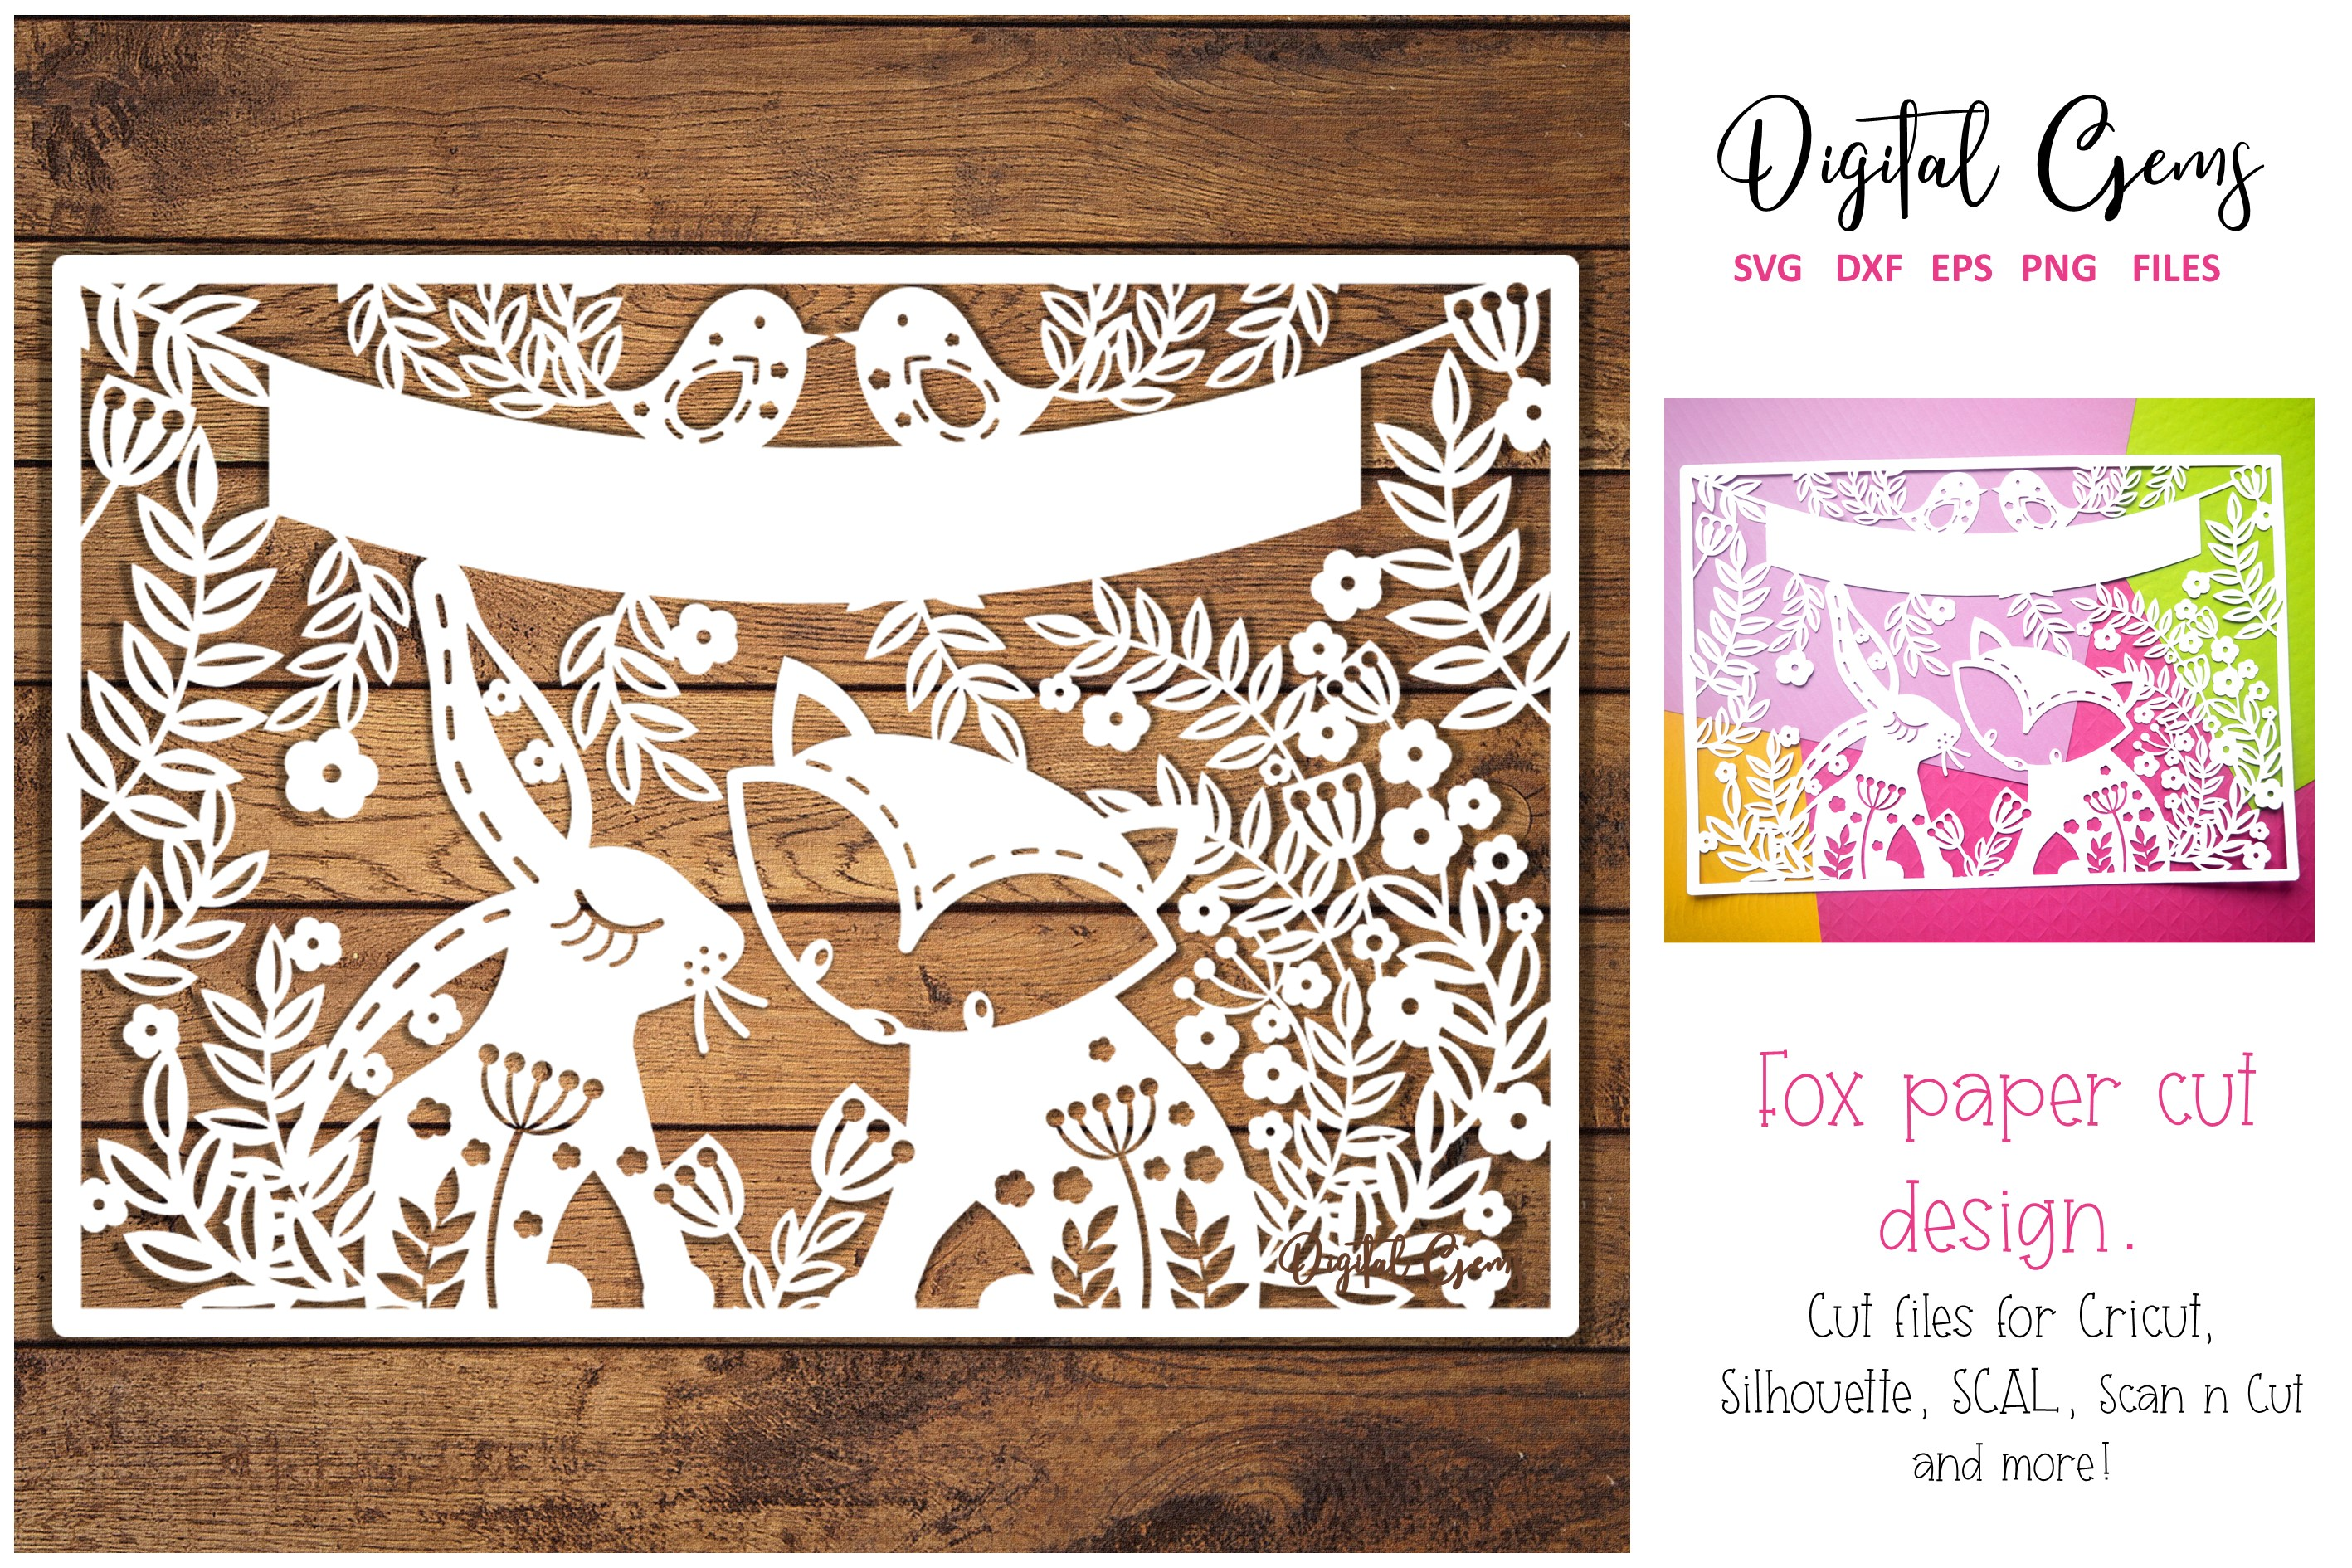 Download Free Fox And Rabbit Papercut Design Graphic By Digital Gems for Cricut Explore, Silhouette and other cutting machines.